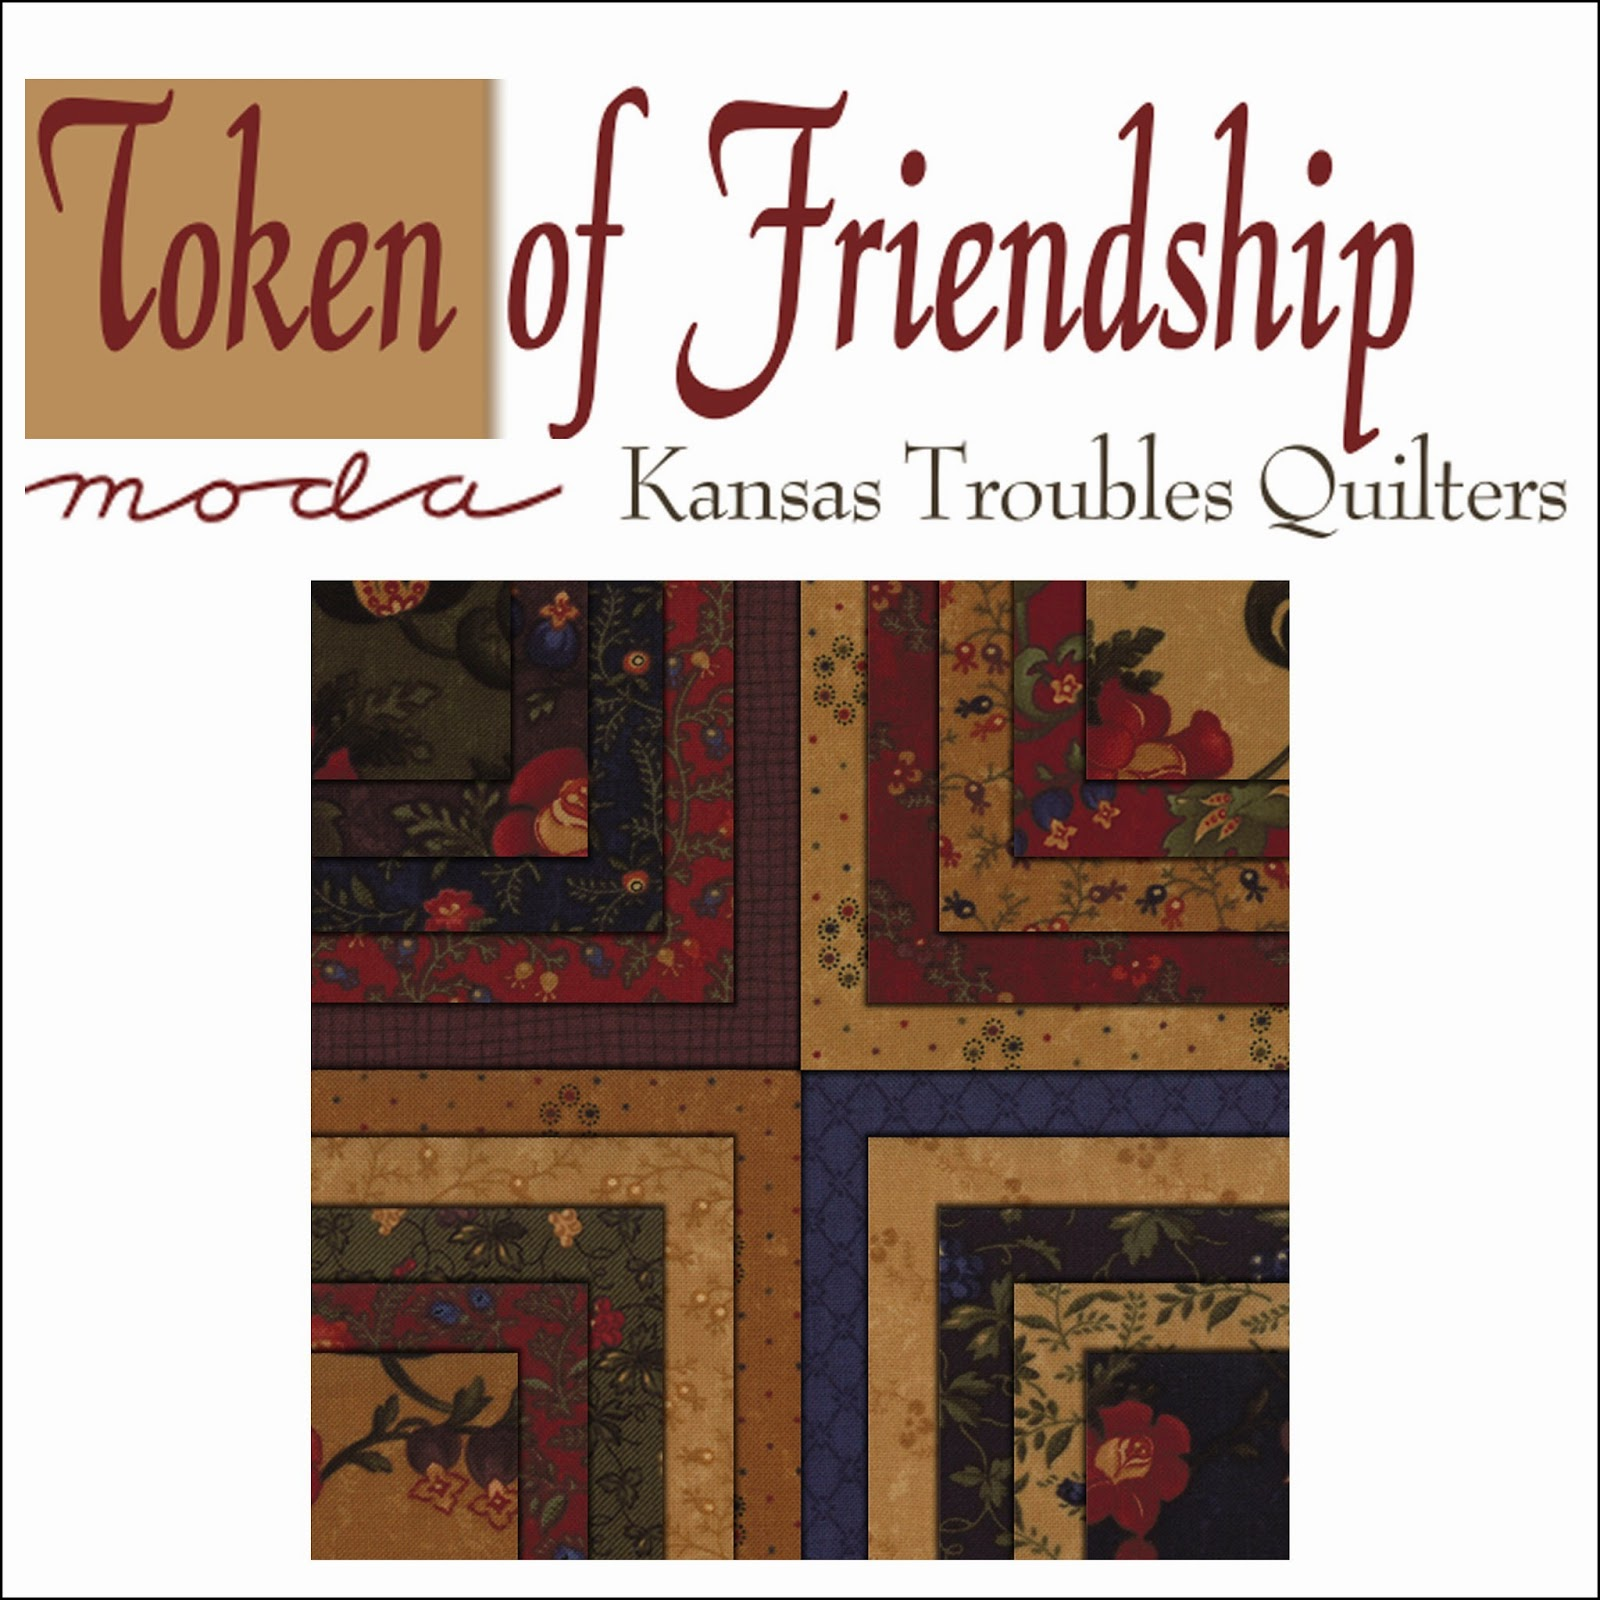 Moda TOKEN OF FRIENDSHIP Quilt Fabric by Kansas Troubles Quilters for Moda Fabrics